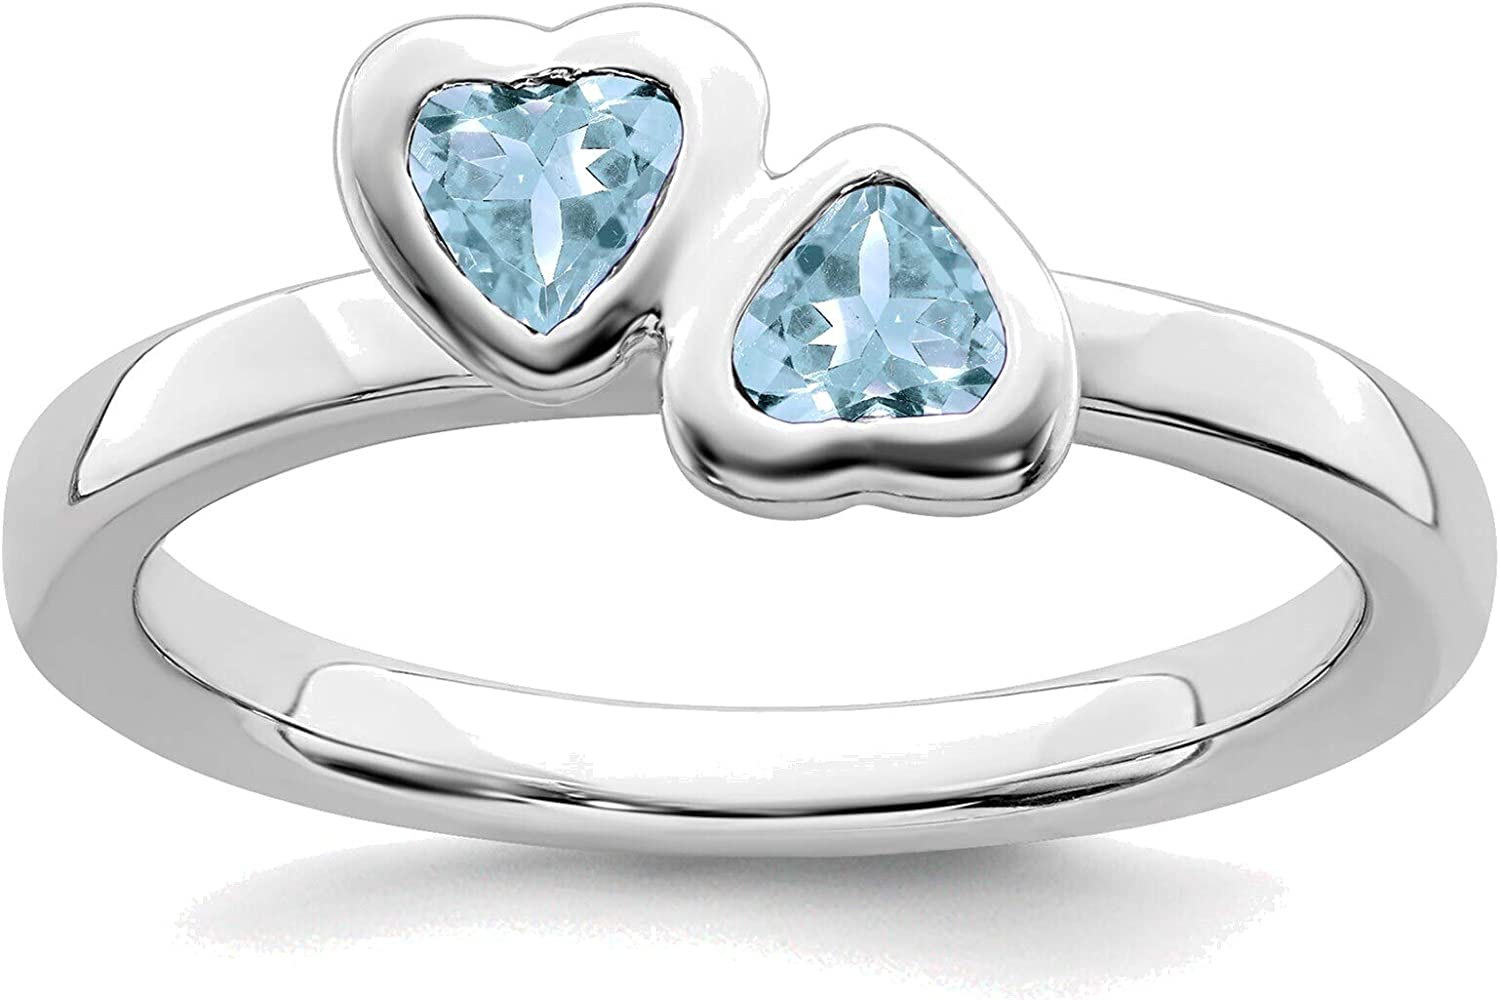 Bonyak Jewelry Solid Sterling Expressions Aquam Stackable Silver Online limited product gift